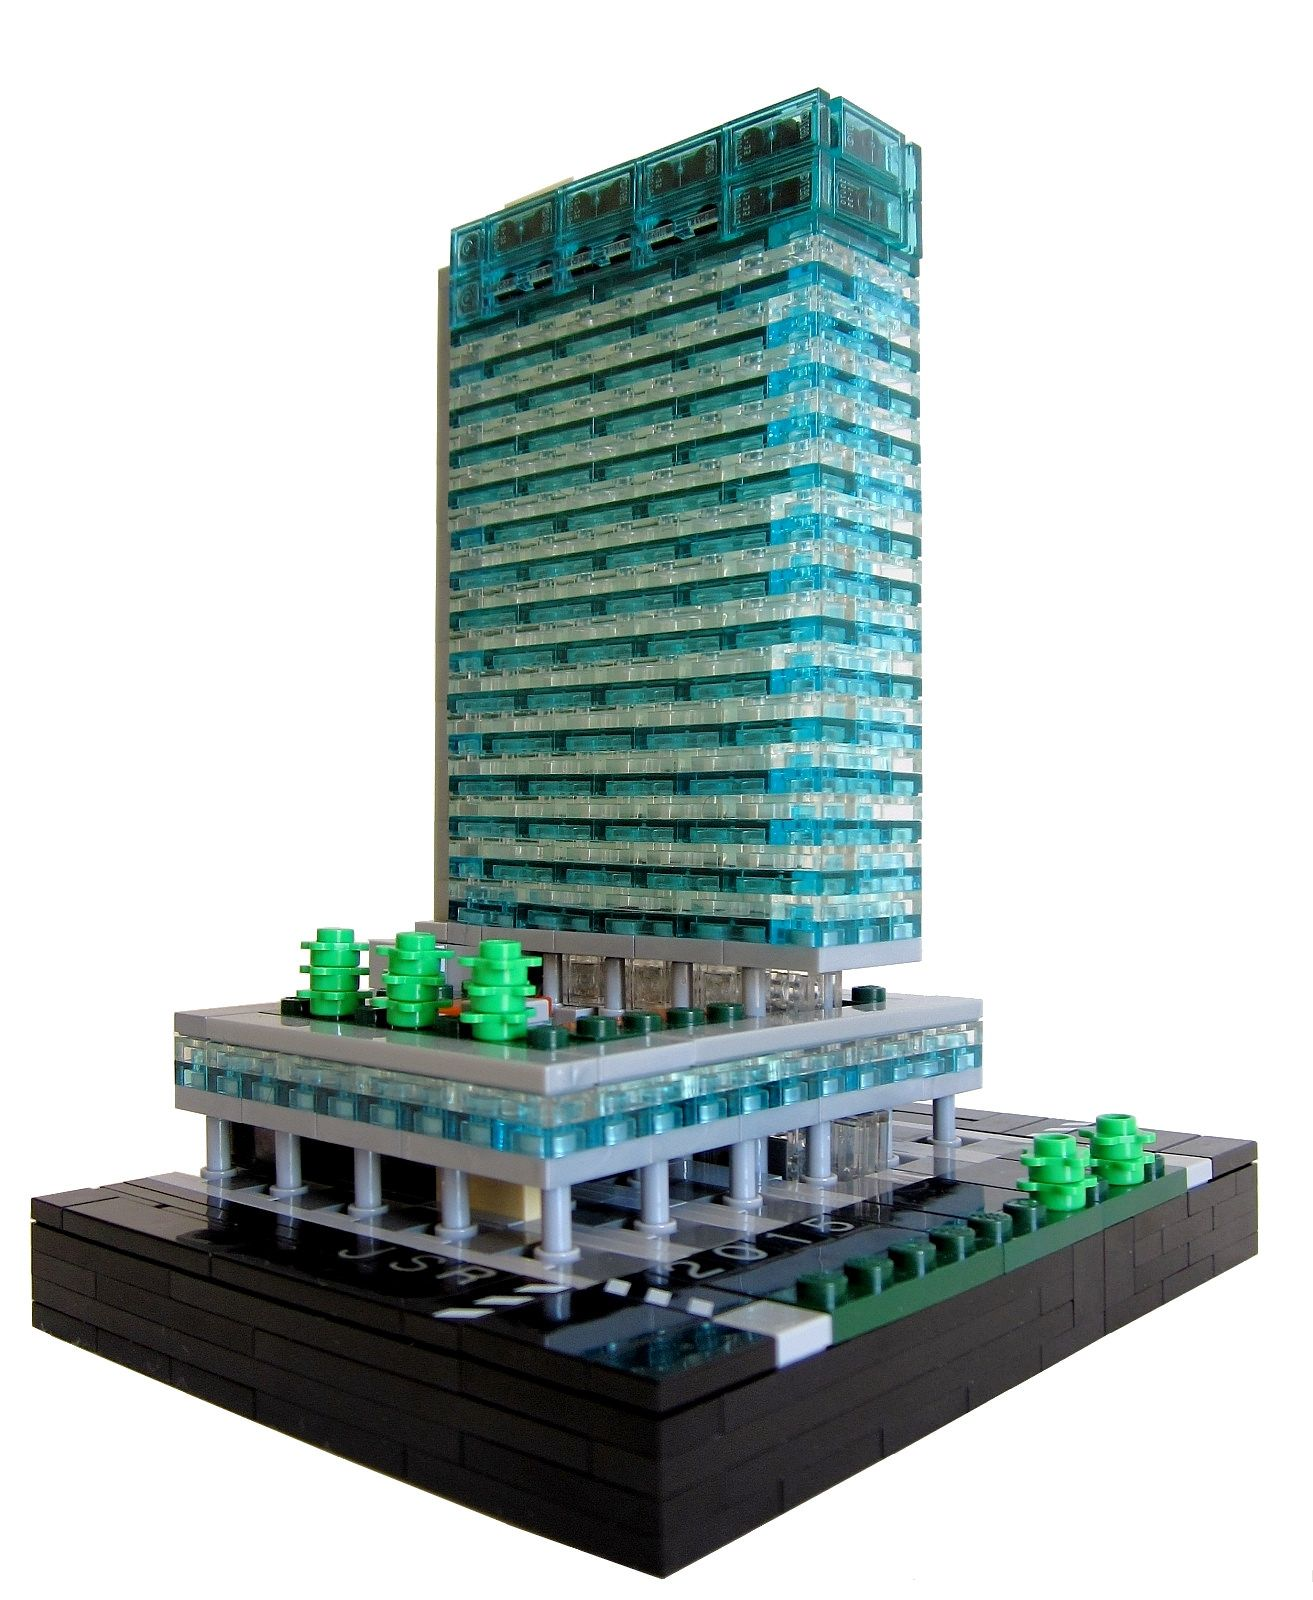 lego architecture new york. Lever House In New York City NY By Architecture Firm Skidmore Owings And Merrill LEGO Model Spencer_R Lego